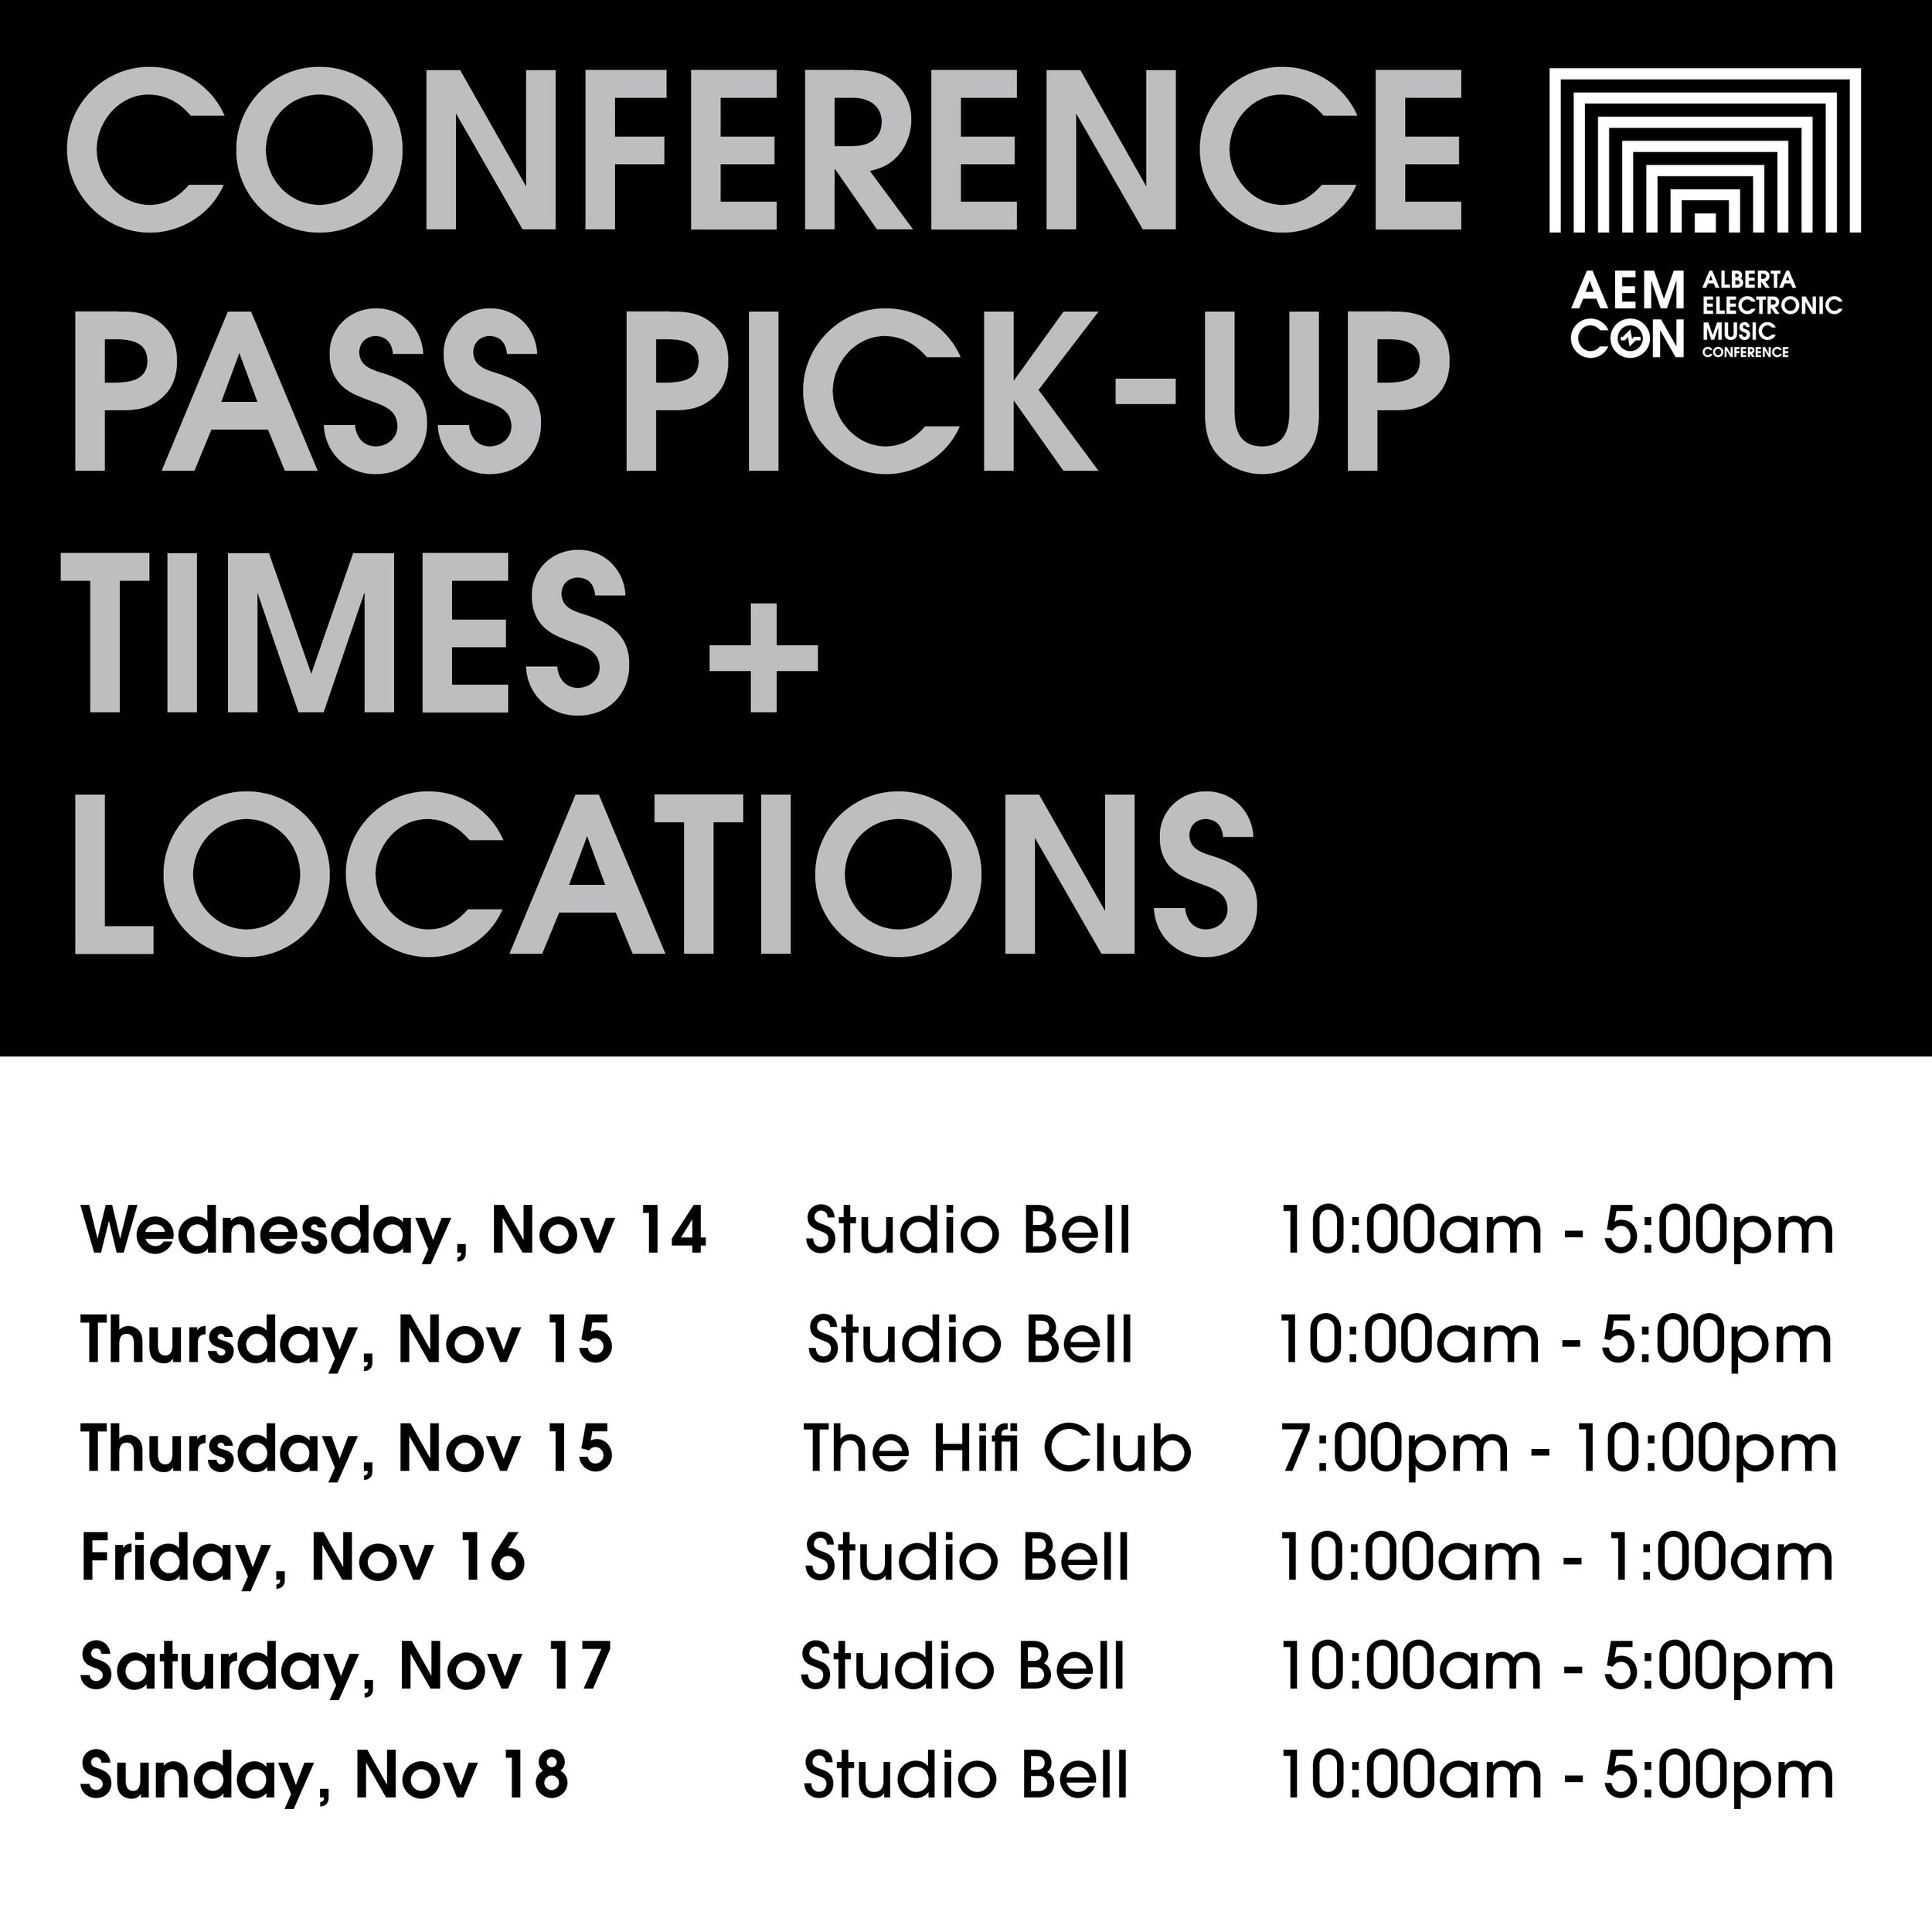 Conference Pass Pick-Up Times